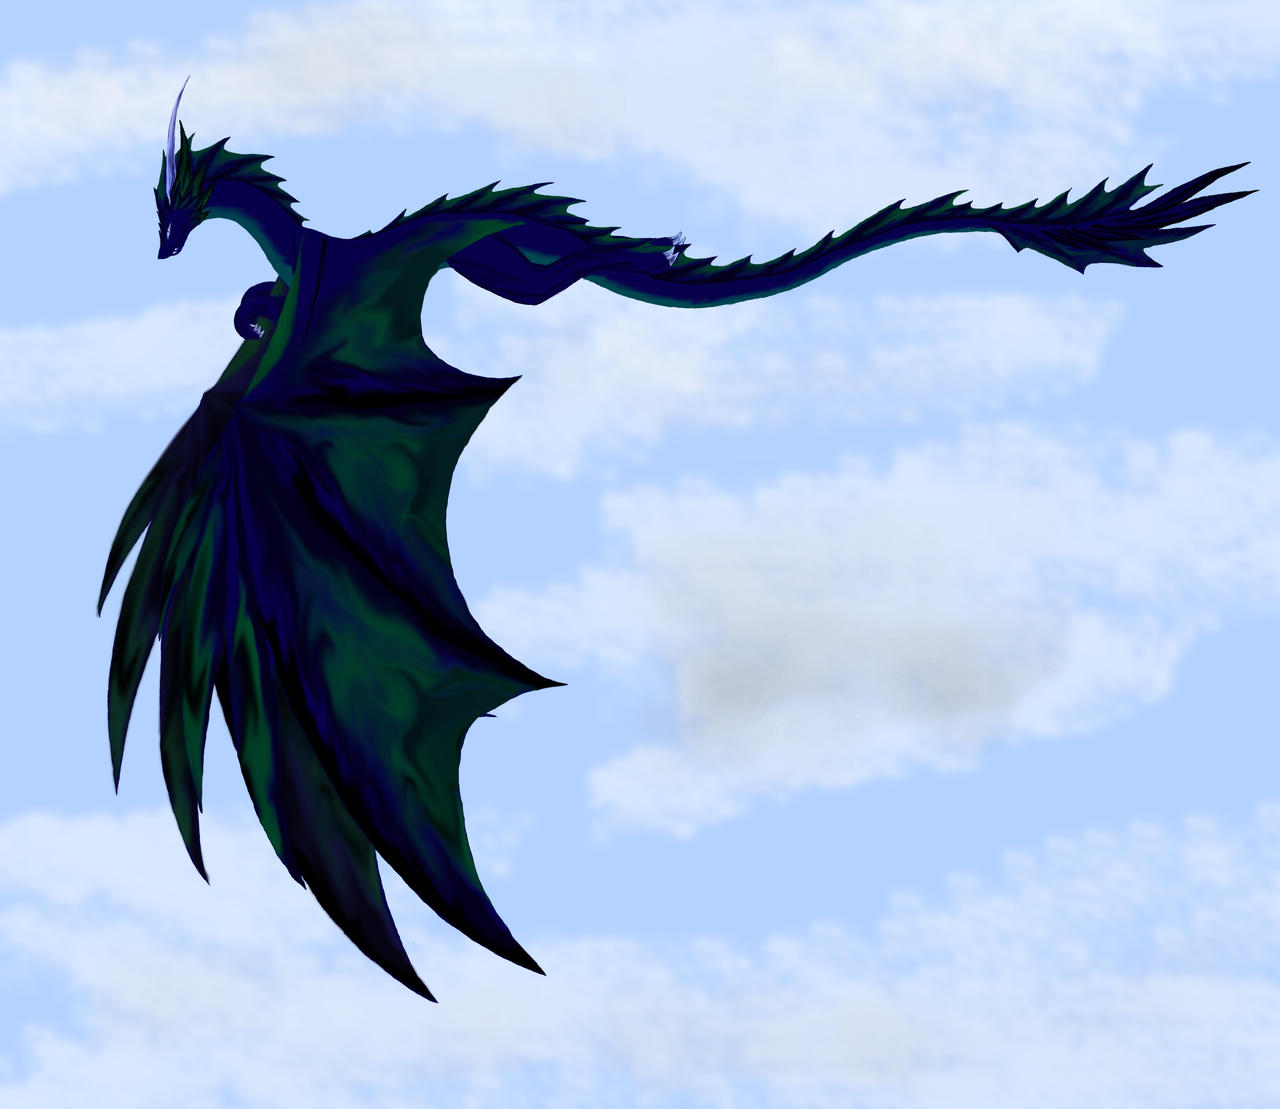 Blue Dragon Flying Flying dragon by dakuness